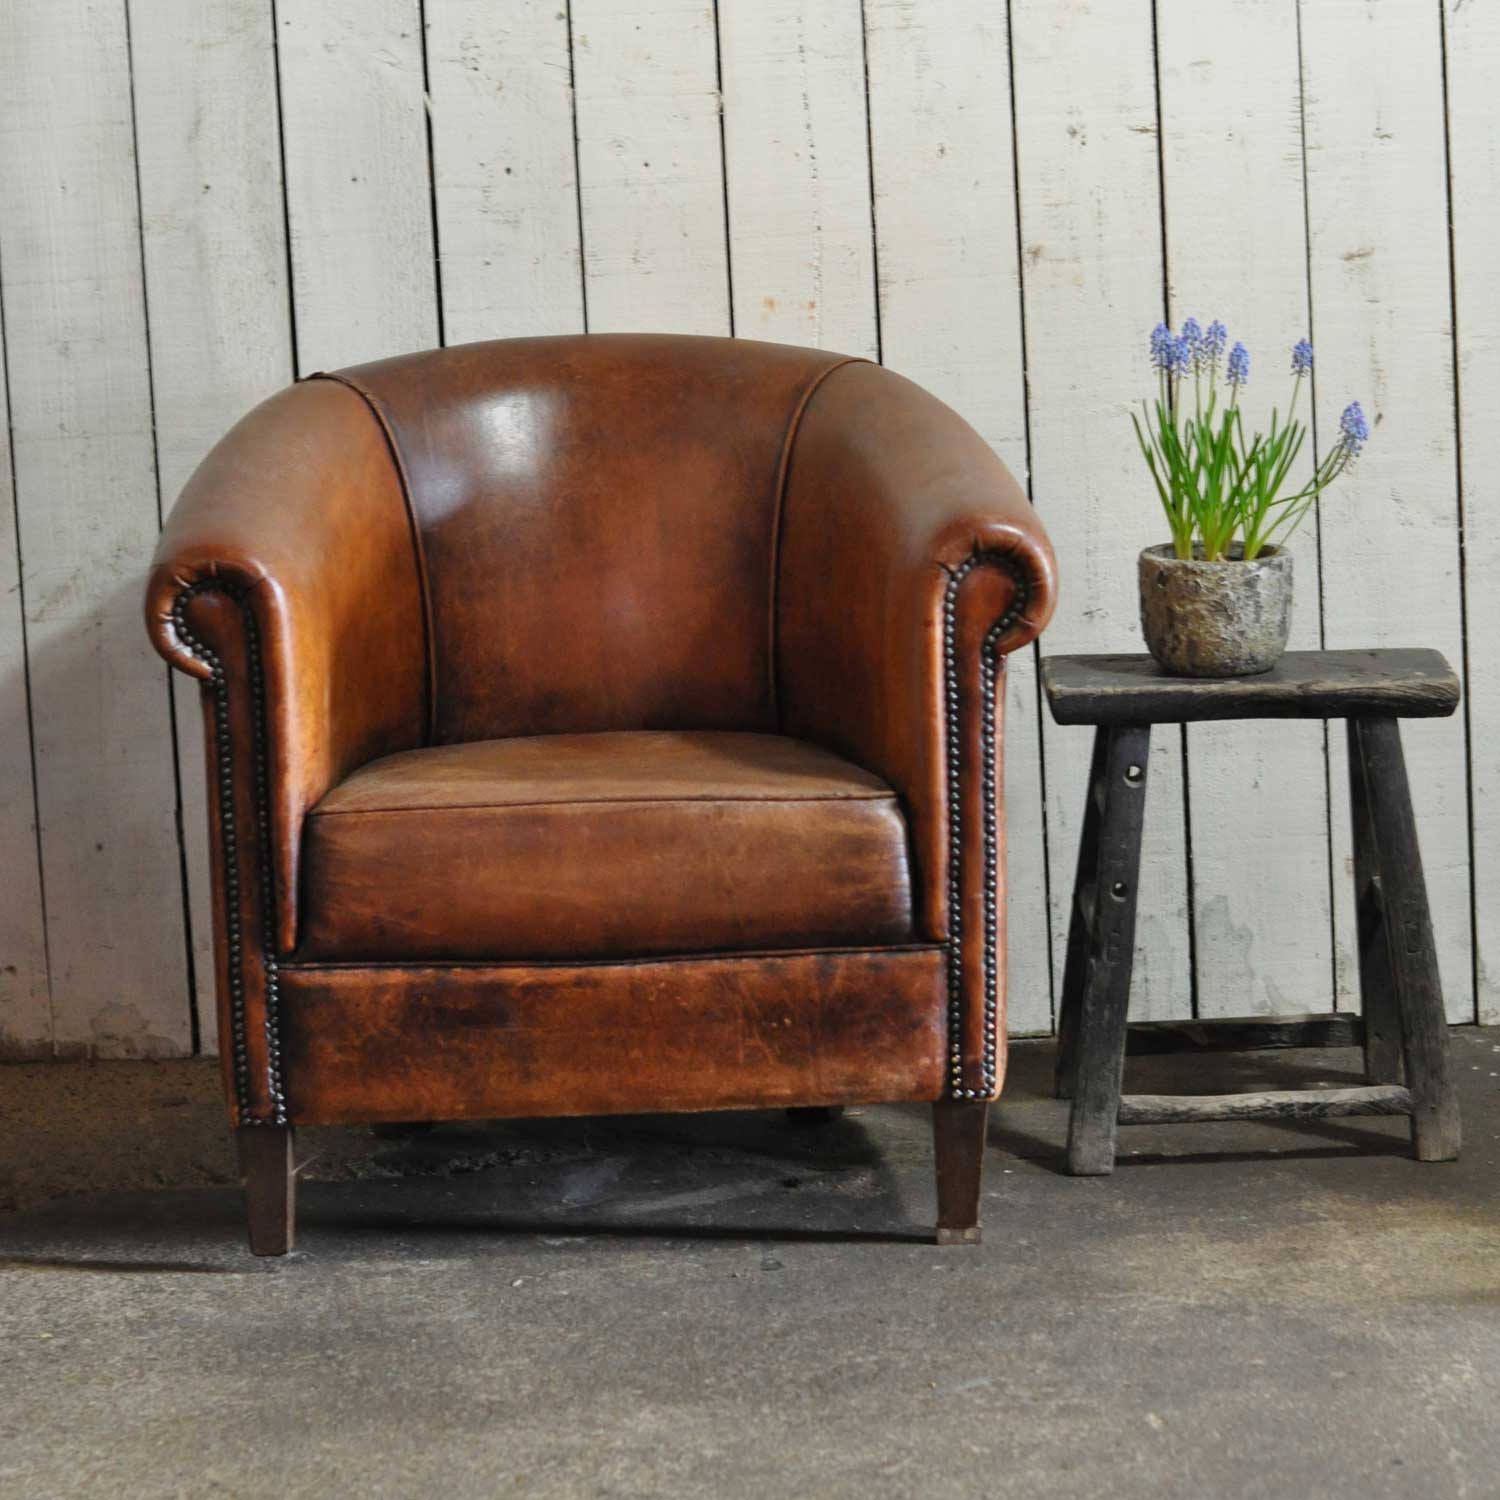 French Club Chair Vintage Worn French Leather Club Chair With Arms Home